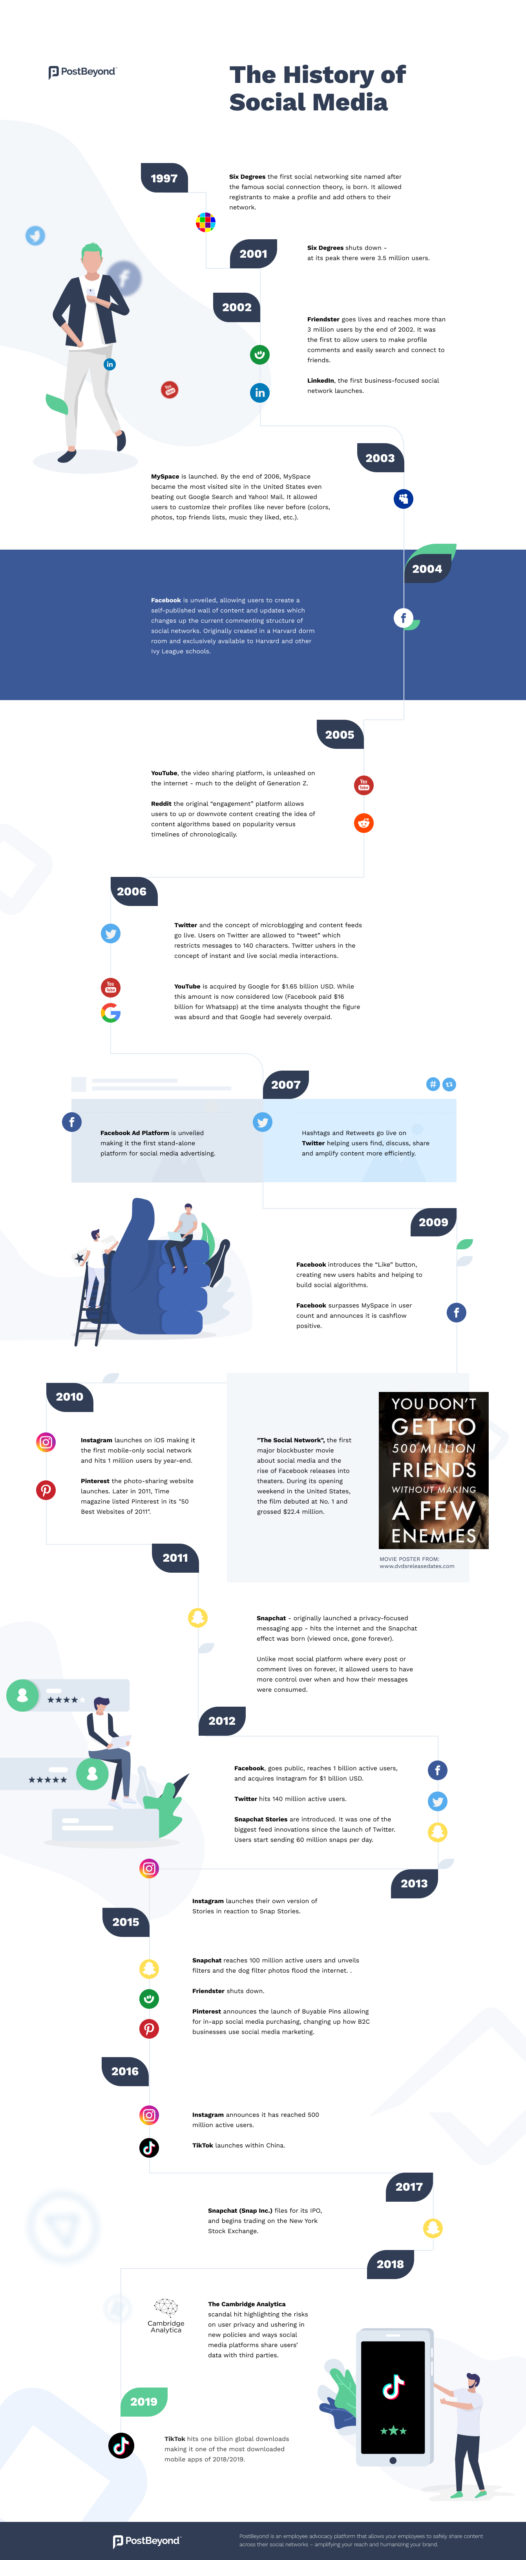 History of Social Media Infographic Image